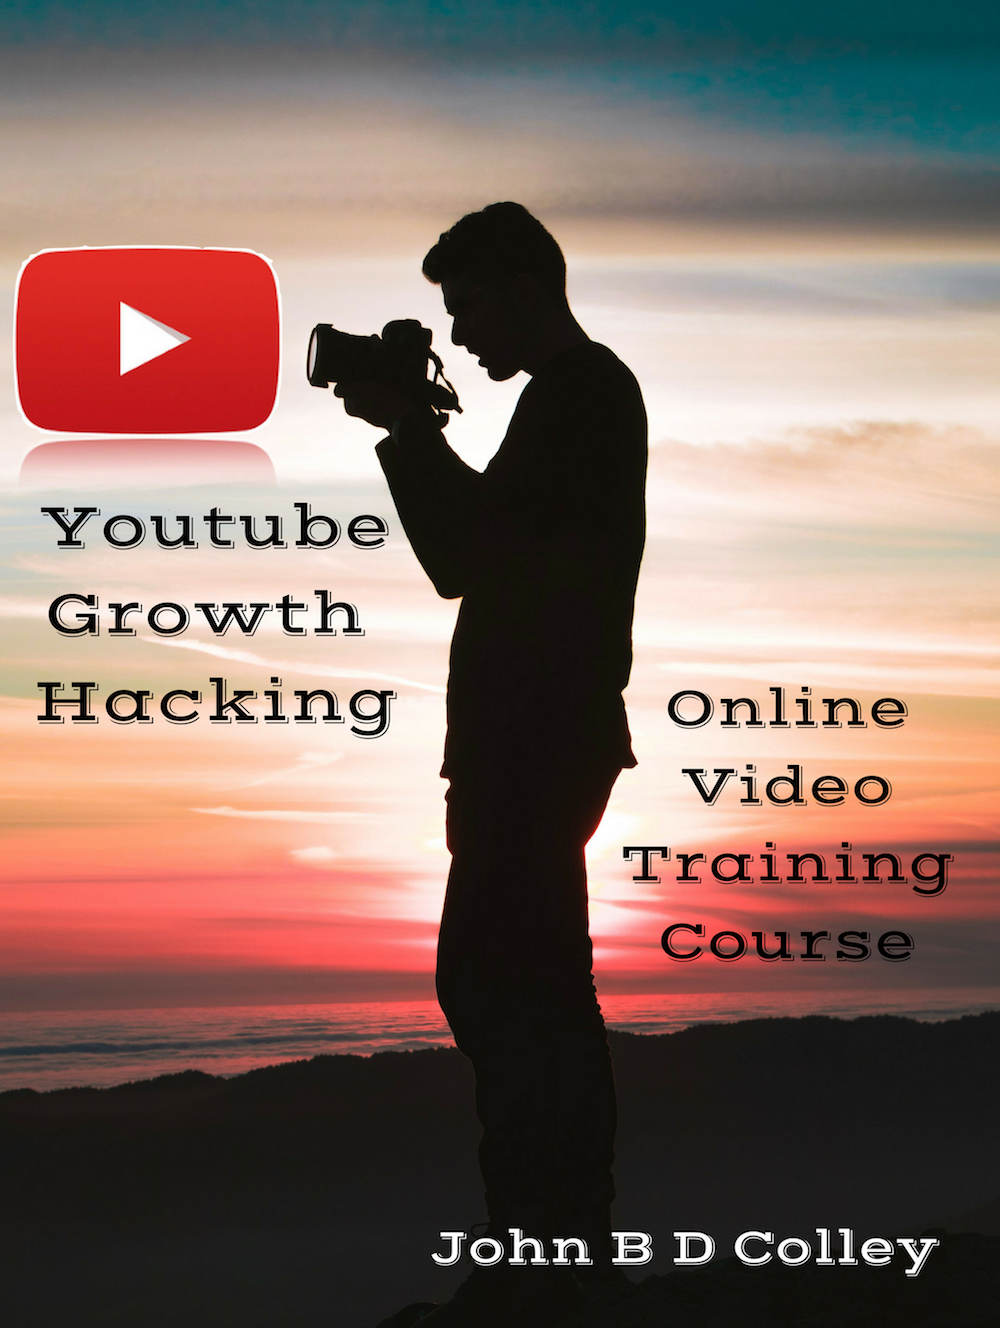 Youtube: Wachstum Hacking Youtube Video Optimierung! (Online Video Training Kurs) [Online Code] (Video-download Auf Kindle Fire)